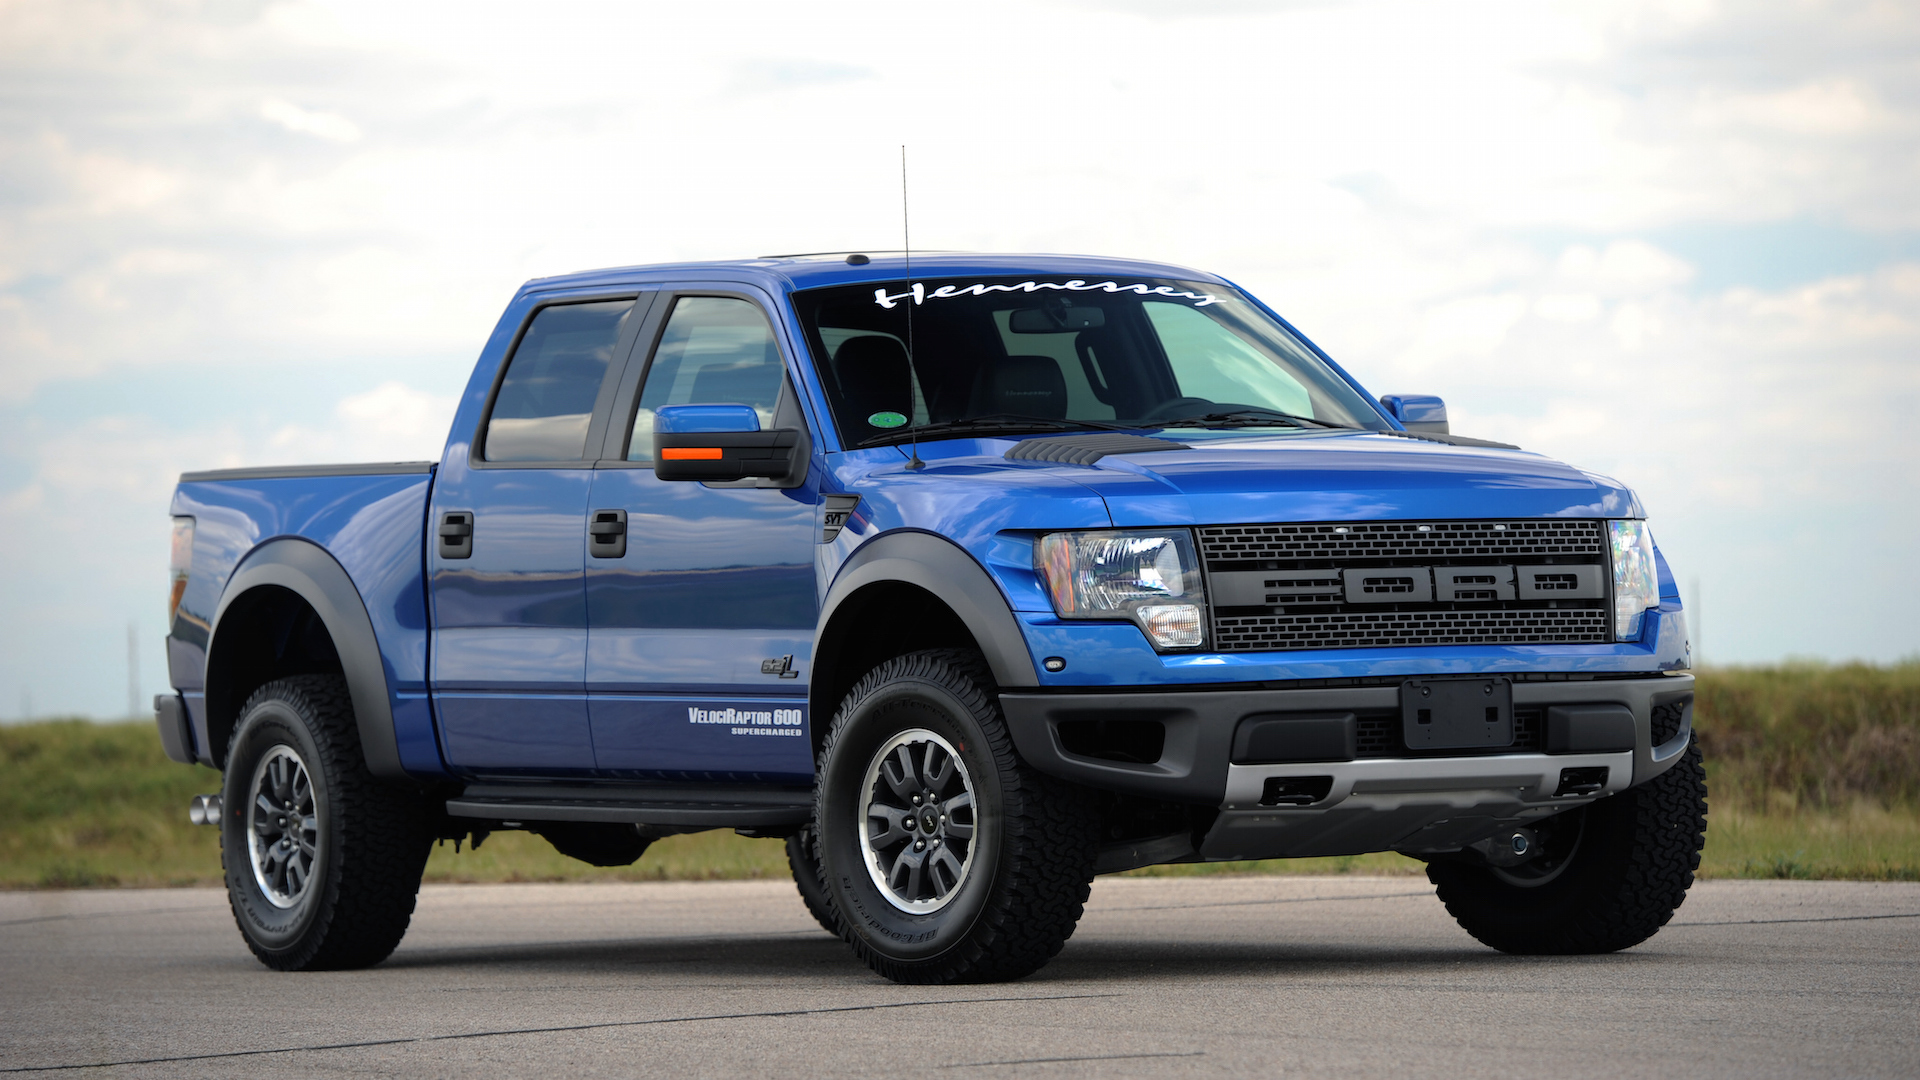 Hennessey Velociraptor 600 And 800 Based On Ford F 150 Svt Raptor 6 2